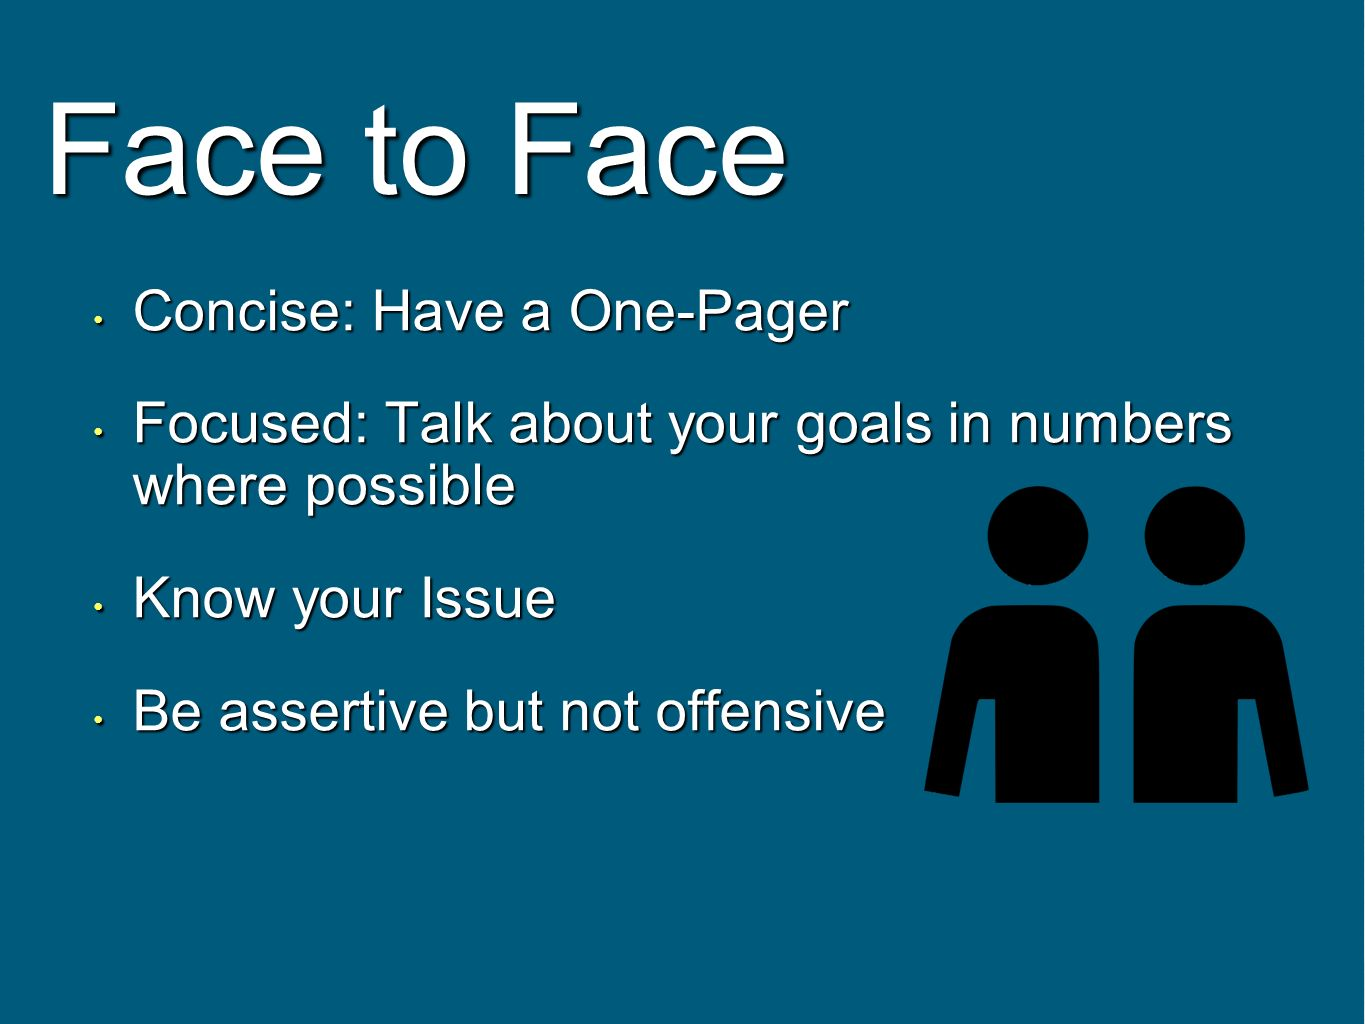 Face to Face Concise: Have a One-Pager